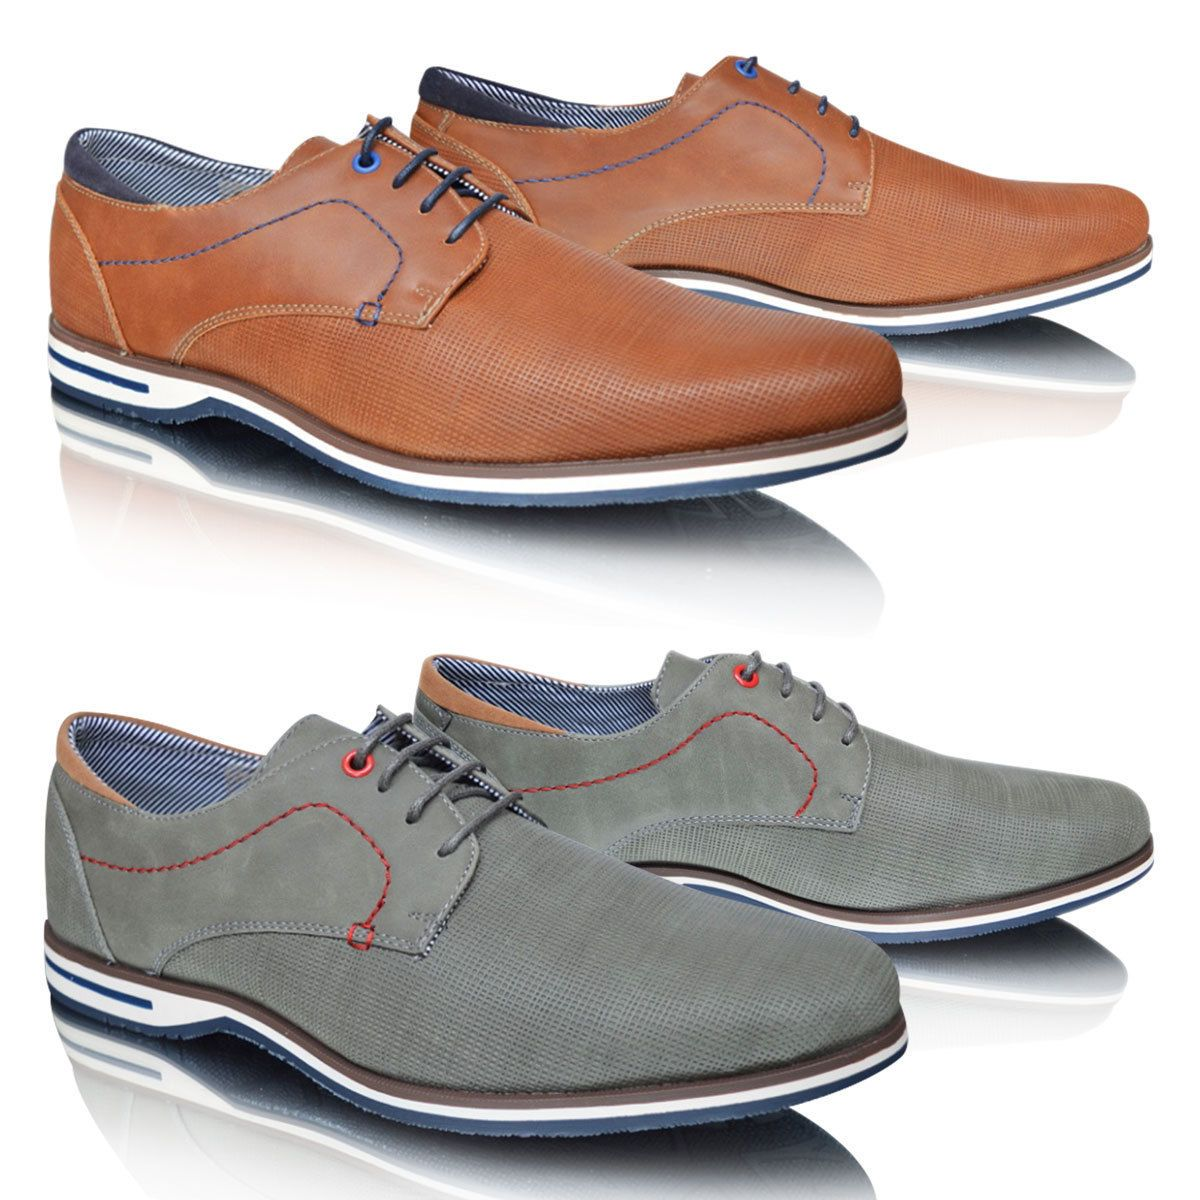 Details about xelay mens casual smart lace up brogues